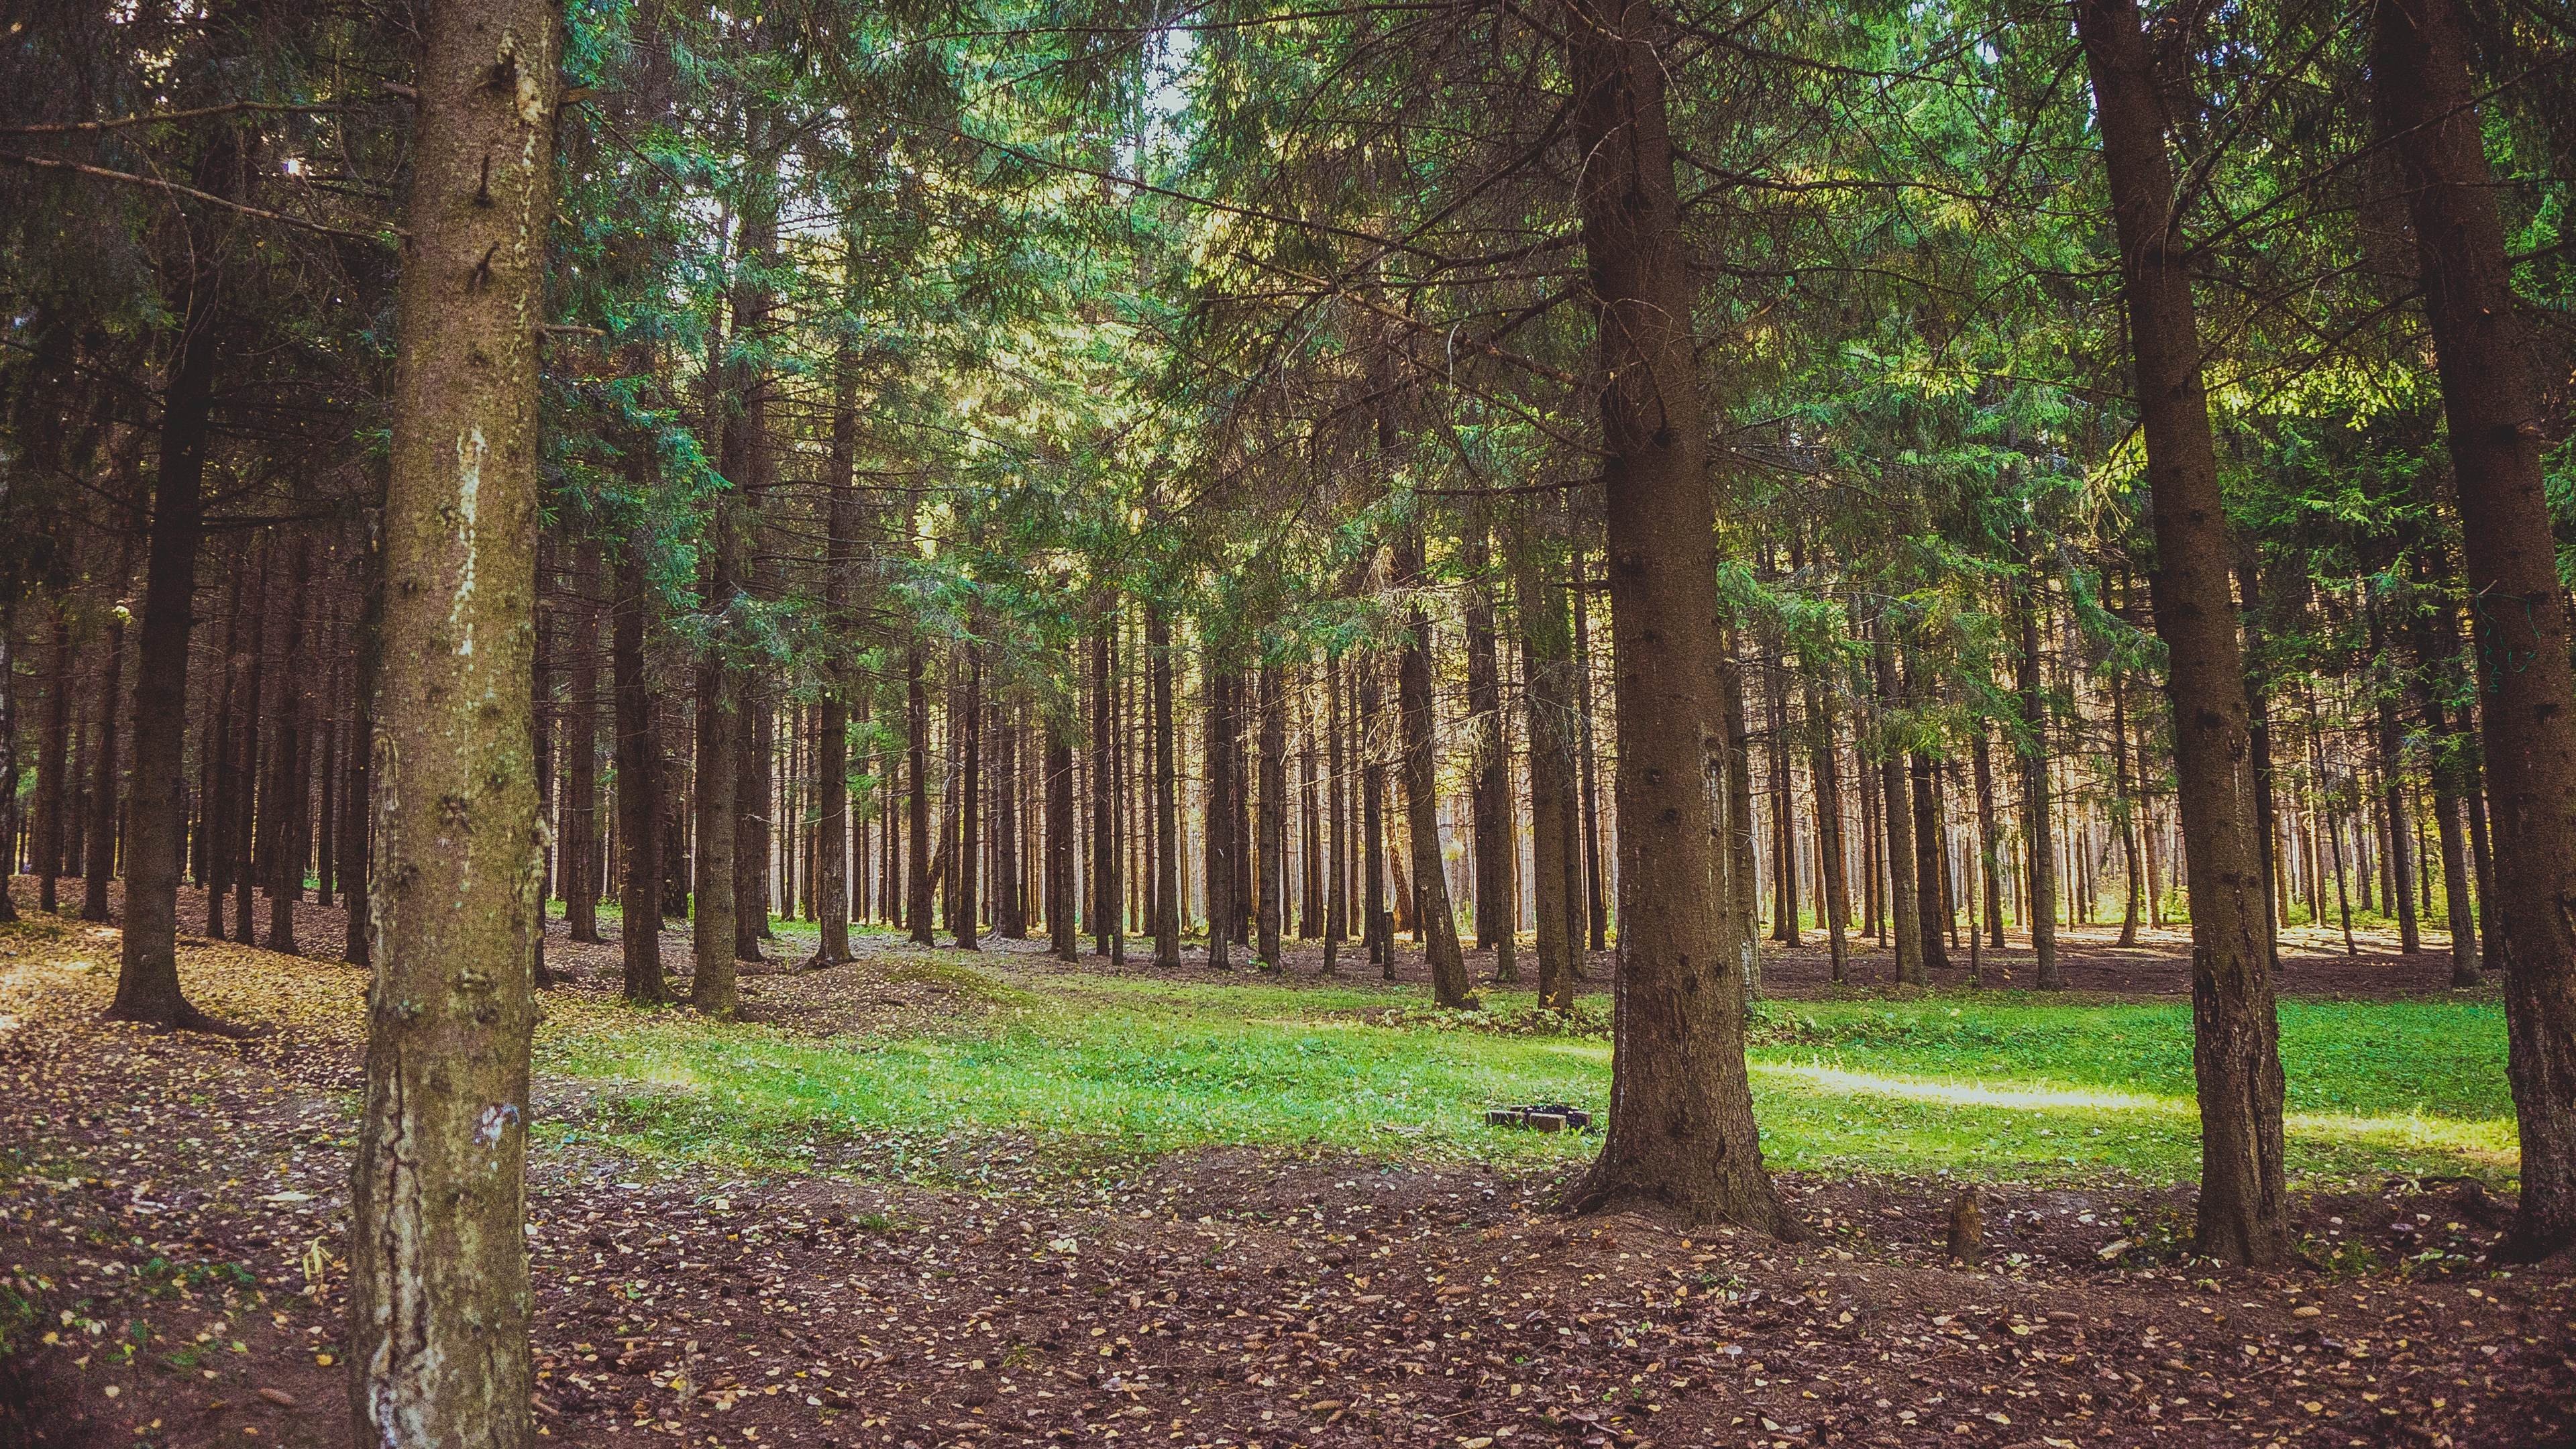 forest pine trees 4k 1541113982 - forest, pine, trees 4k - Trees, Pine, Forest